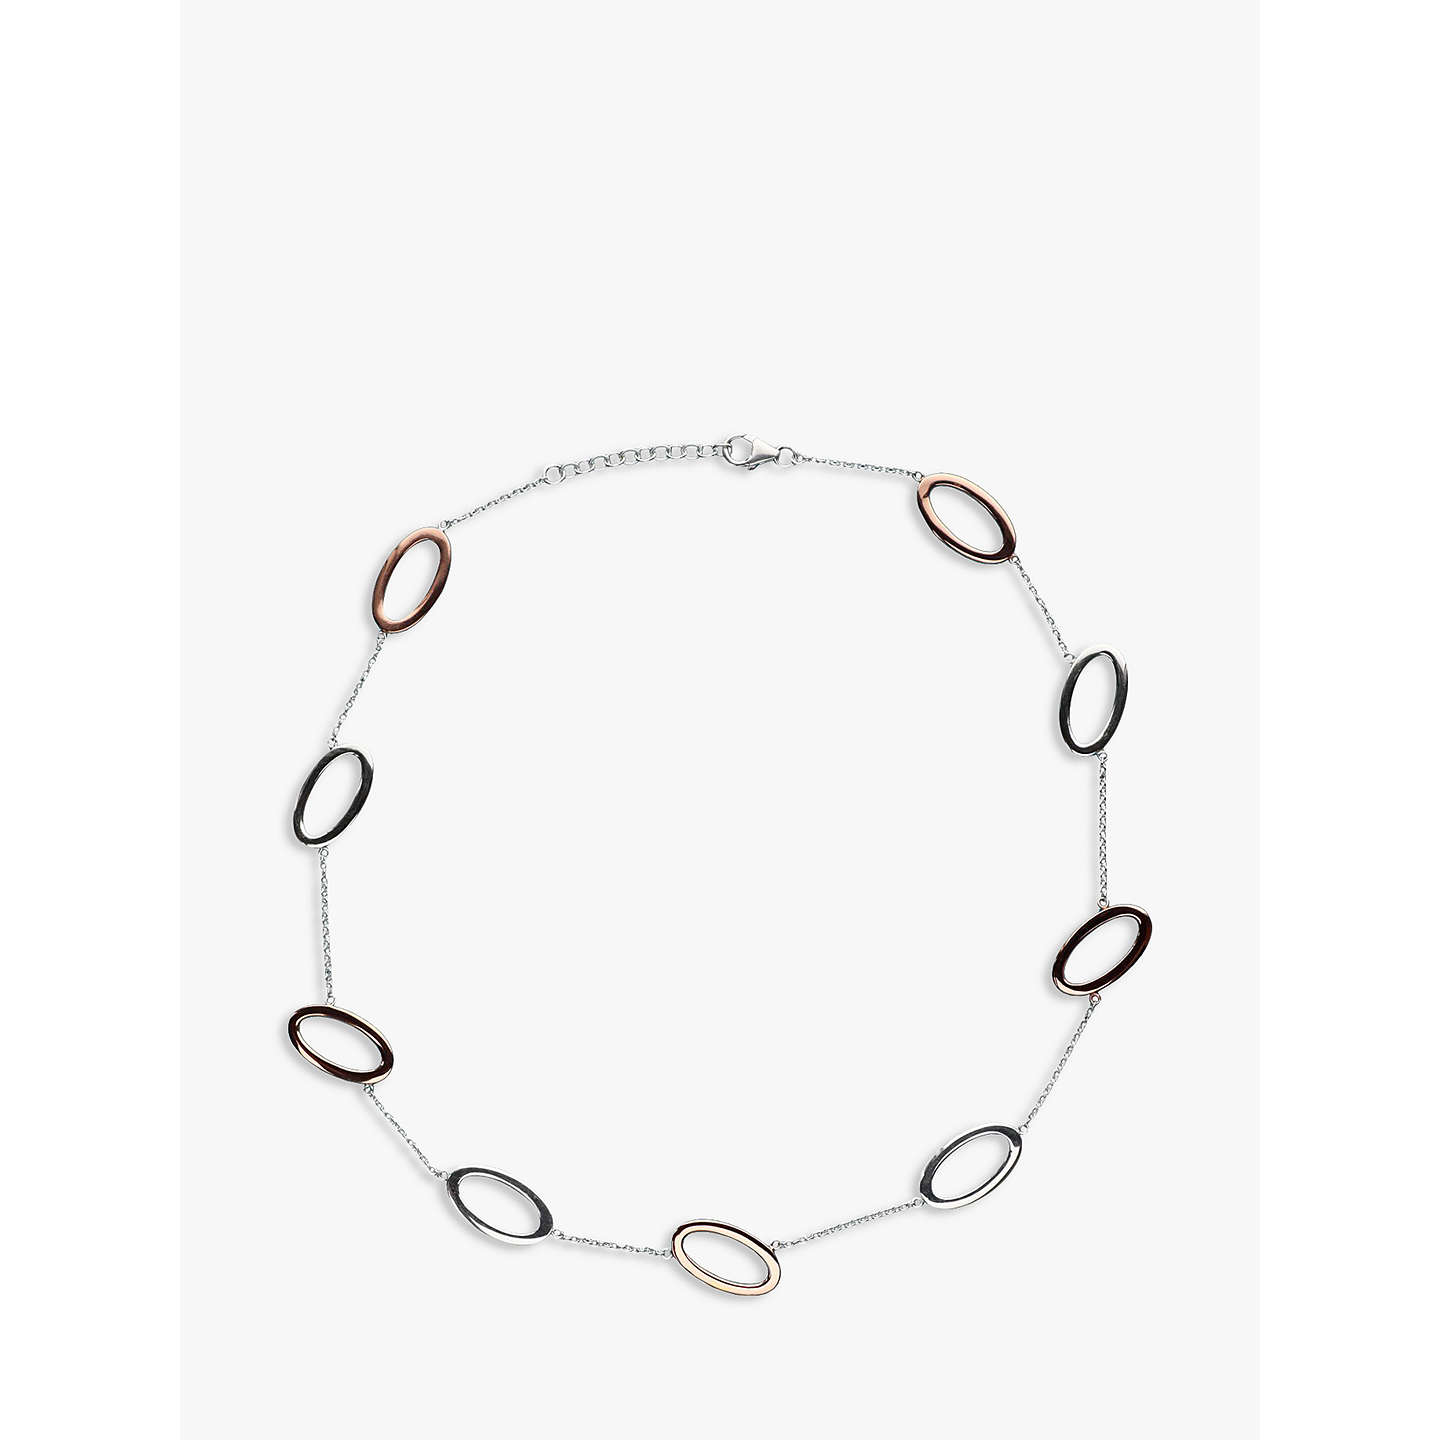 BuyNina B Open Oval Link Necklace, Silver/Red Online at johnlewis.com